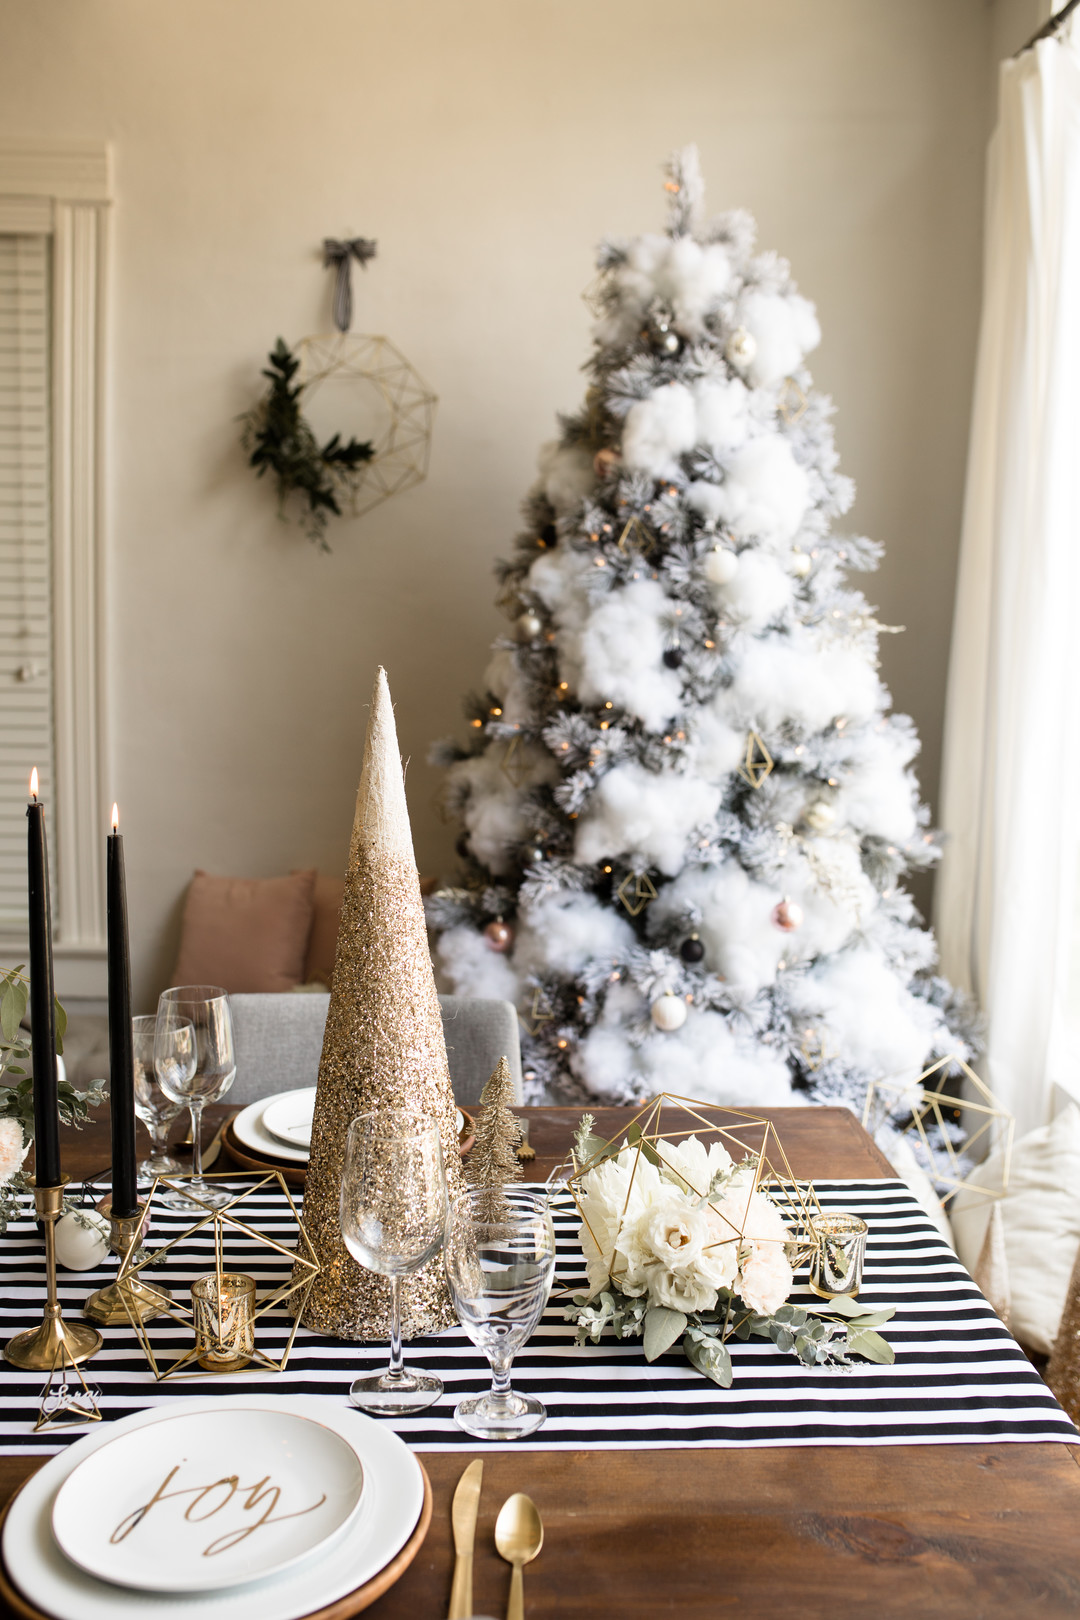 Looking for modern Christmas tablescape ideas for your holiday table? This festive table with blush, golds and geometric designs has a fresh table setting with a gorgeous centerpiece and would be the perfect table decoration for your party or dinner! Click for all the details! #Christmasdecor #holidaydecor #moderndesign #tablescape